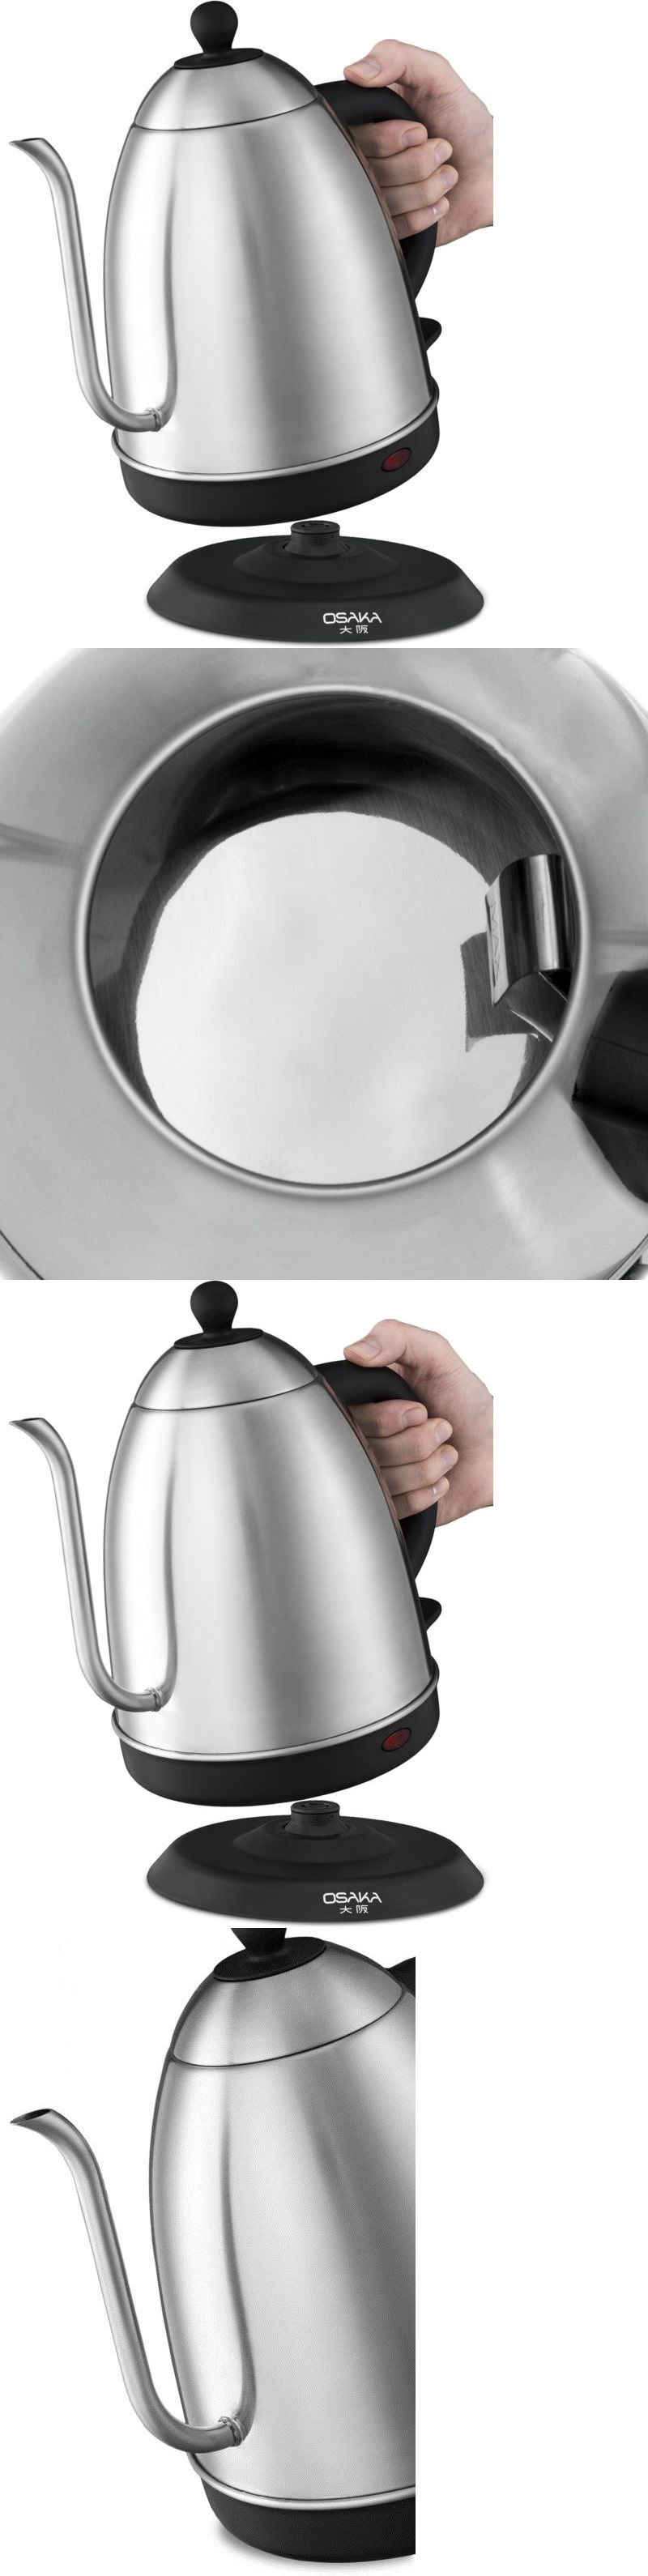 tea kettles 15 liter electric gooseneck drip cordless kettle for pour over coffee and